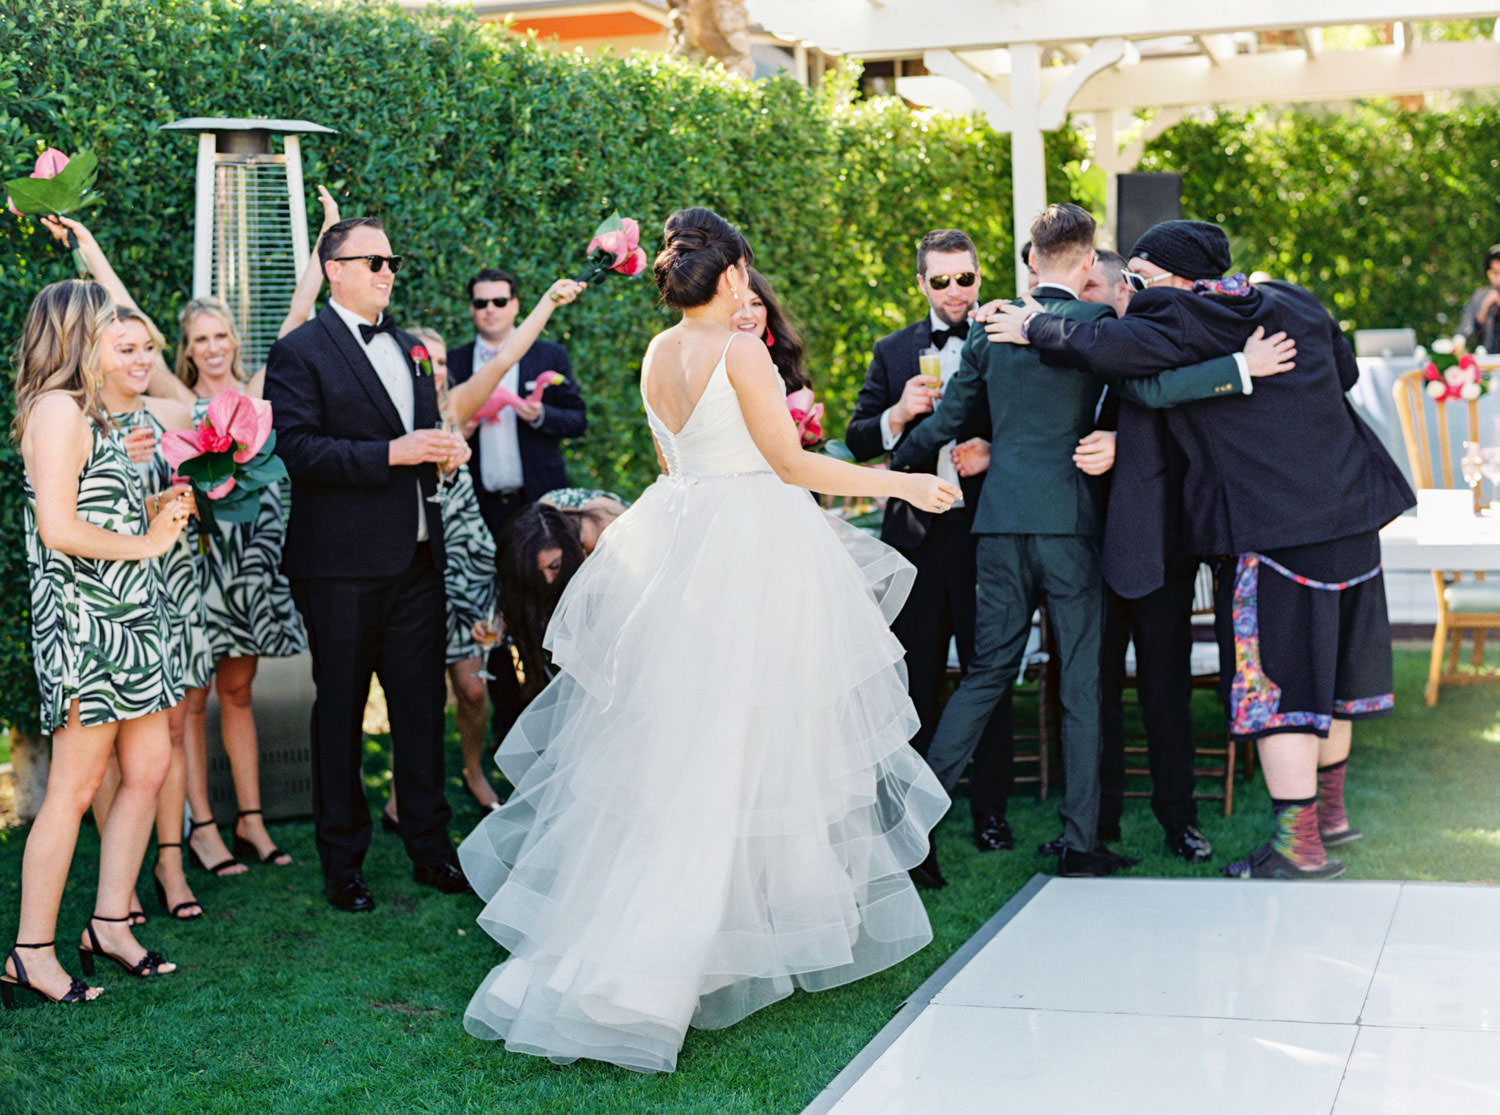 Bride with beehive updo and sleeveless silk gown with layers of tulle for her skirt entering the reception with the groom. Riviera Palm Springs Wedding by Cavin Elizabeth Photography